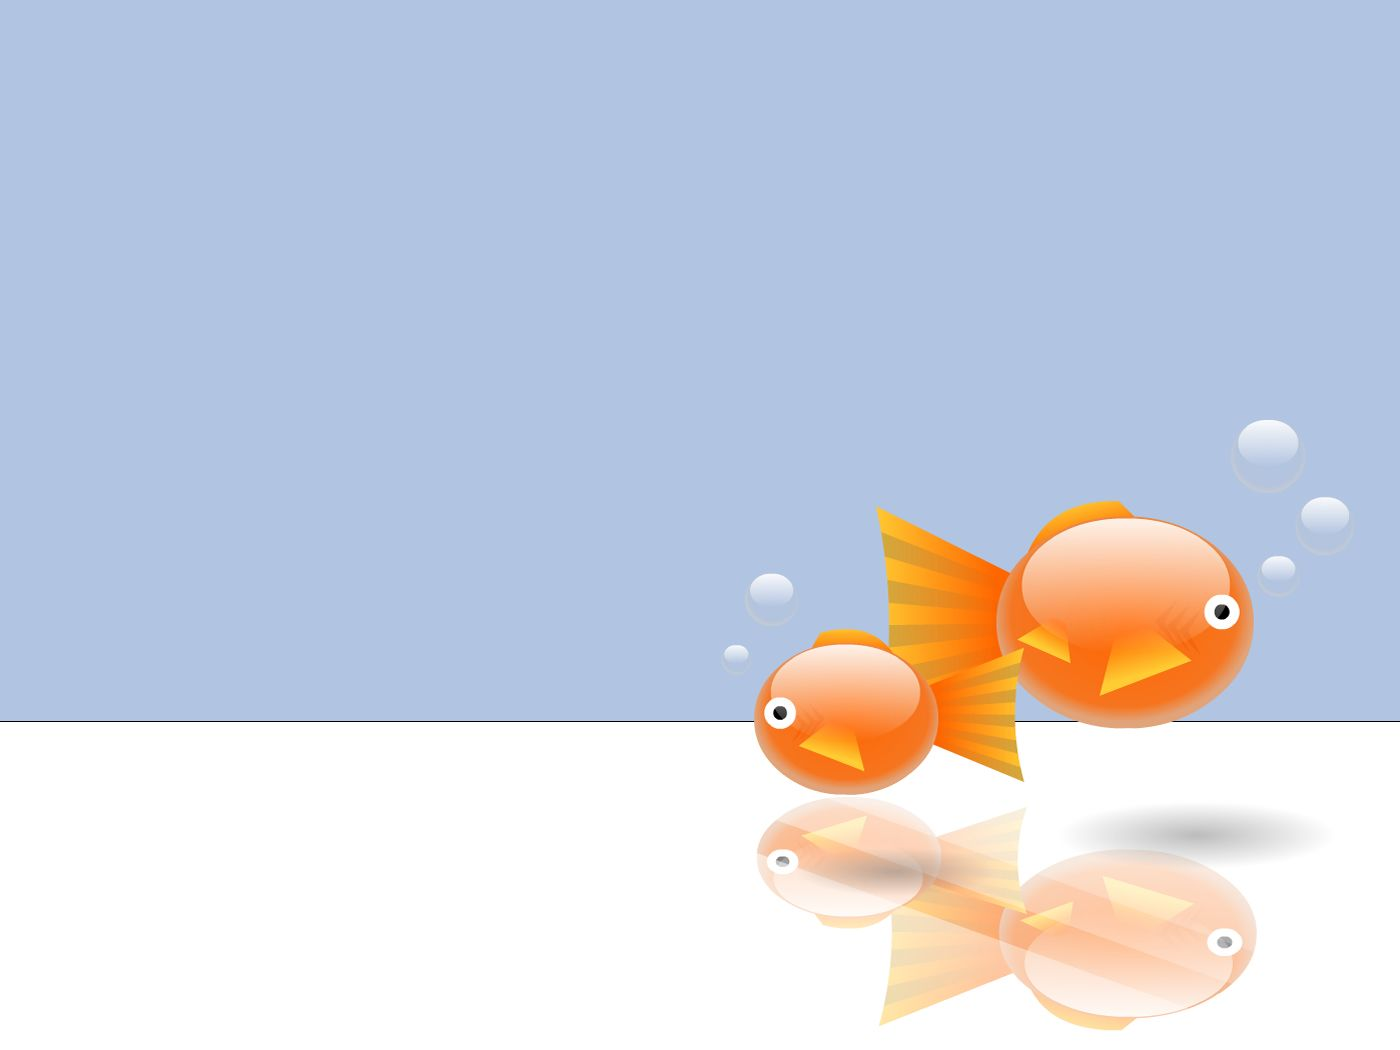 PPT Background Very Angry Fish ppt backgrounds Very Angry Fish PPT 1400x1050